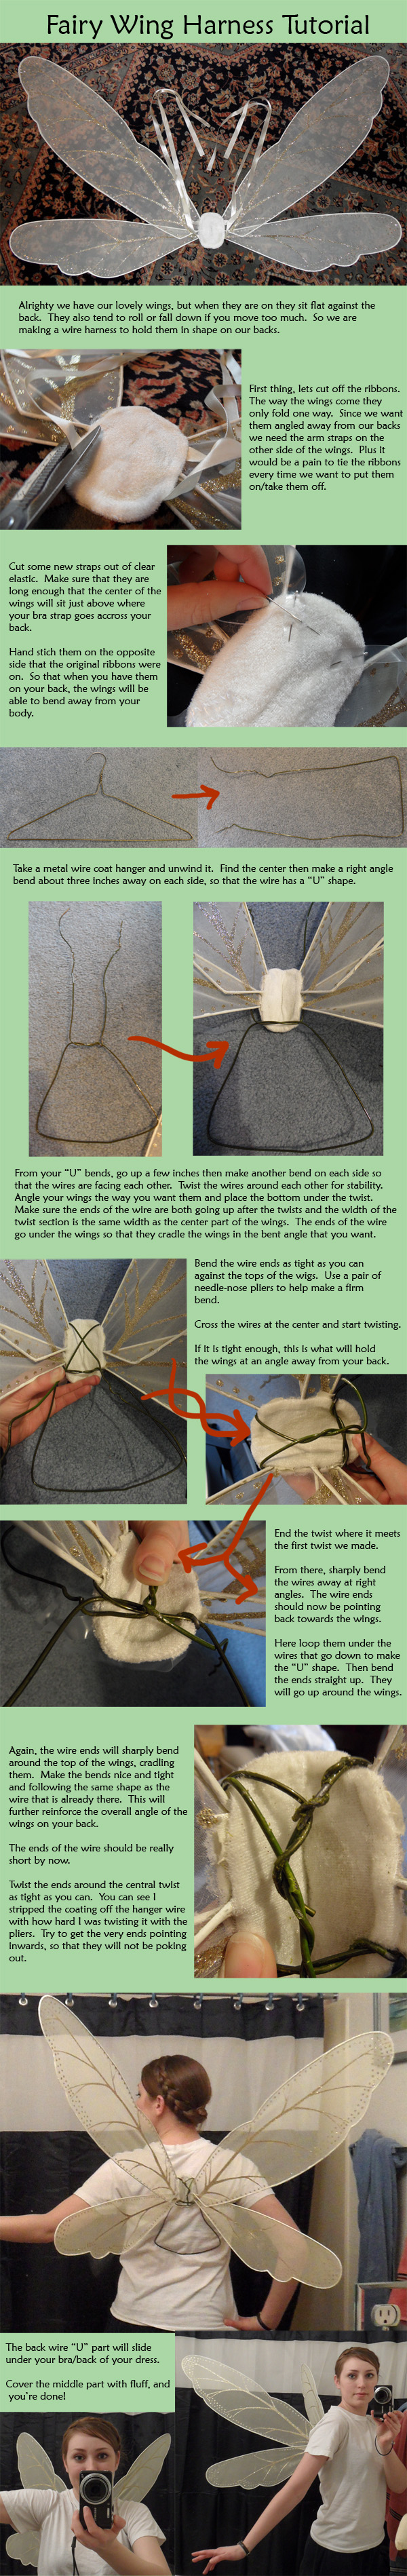 Fairy Wing Wire Harness Tutorial by Naerko